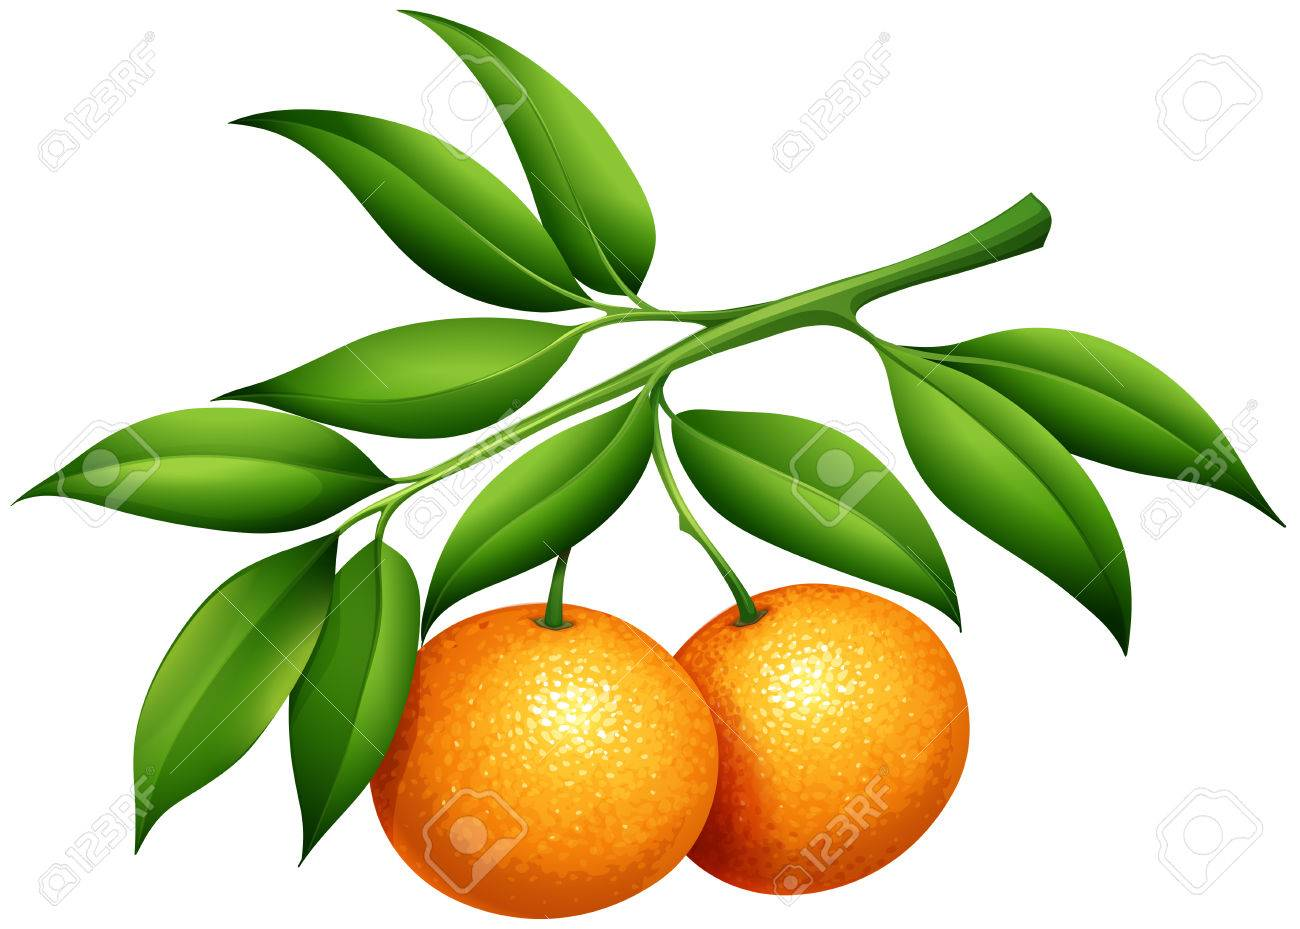 Oranges with stem and leaves illustration - 48834053